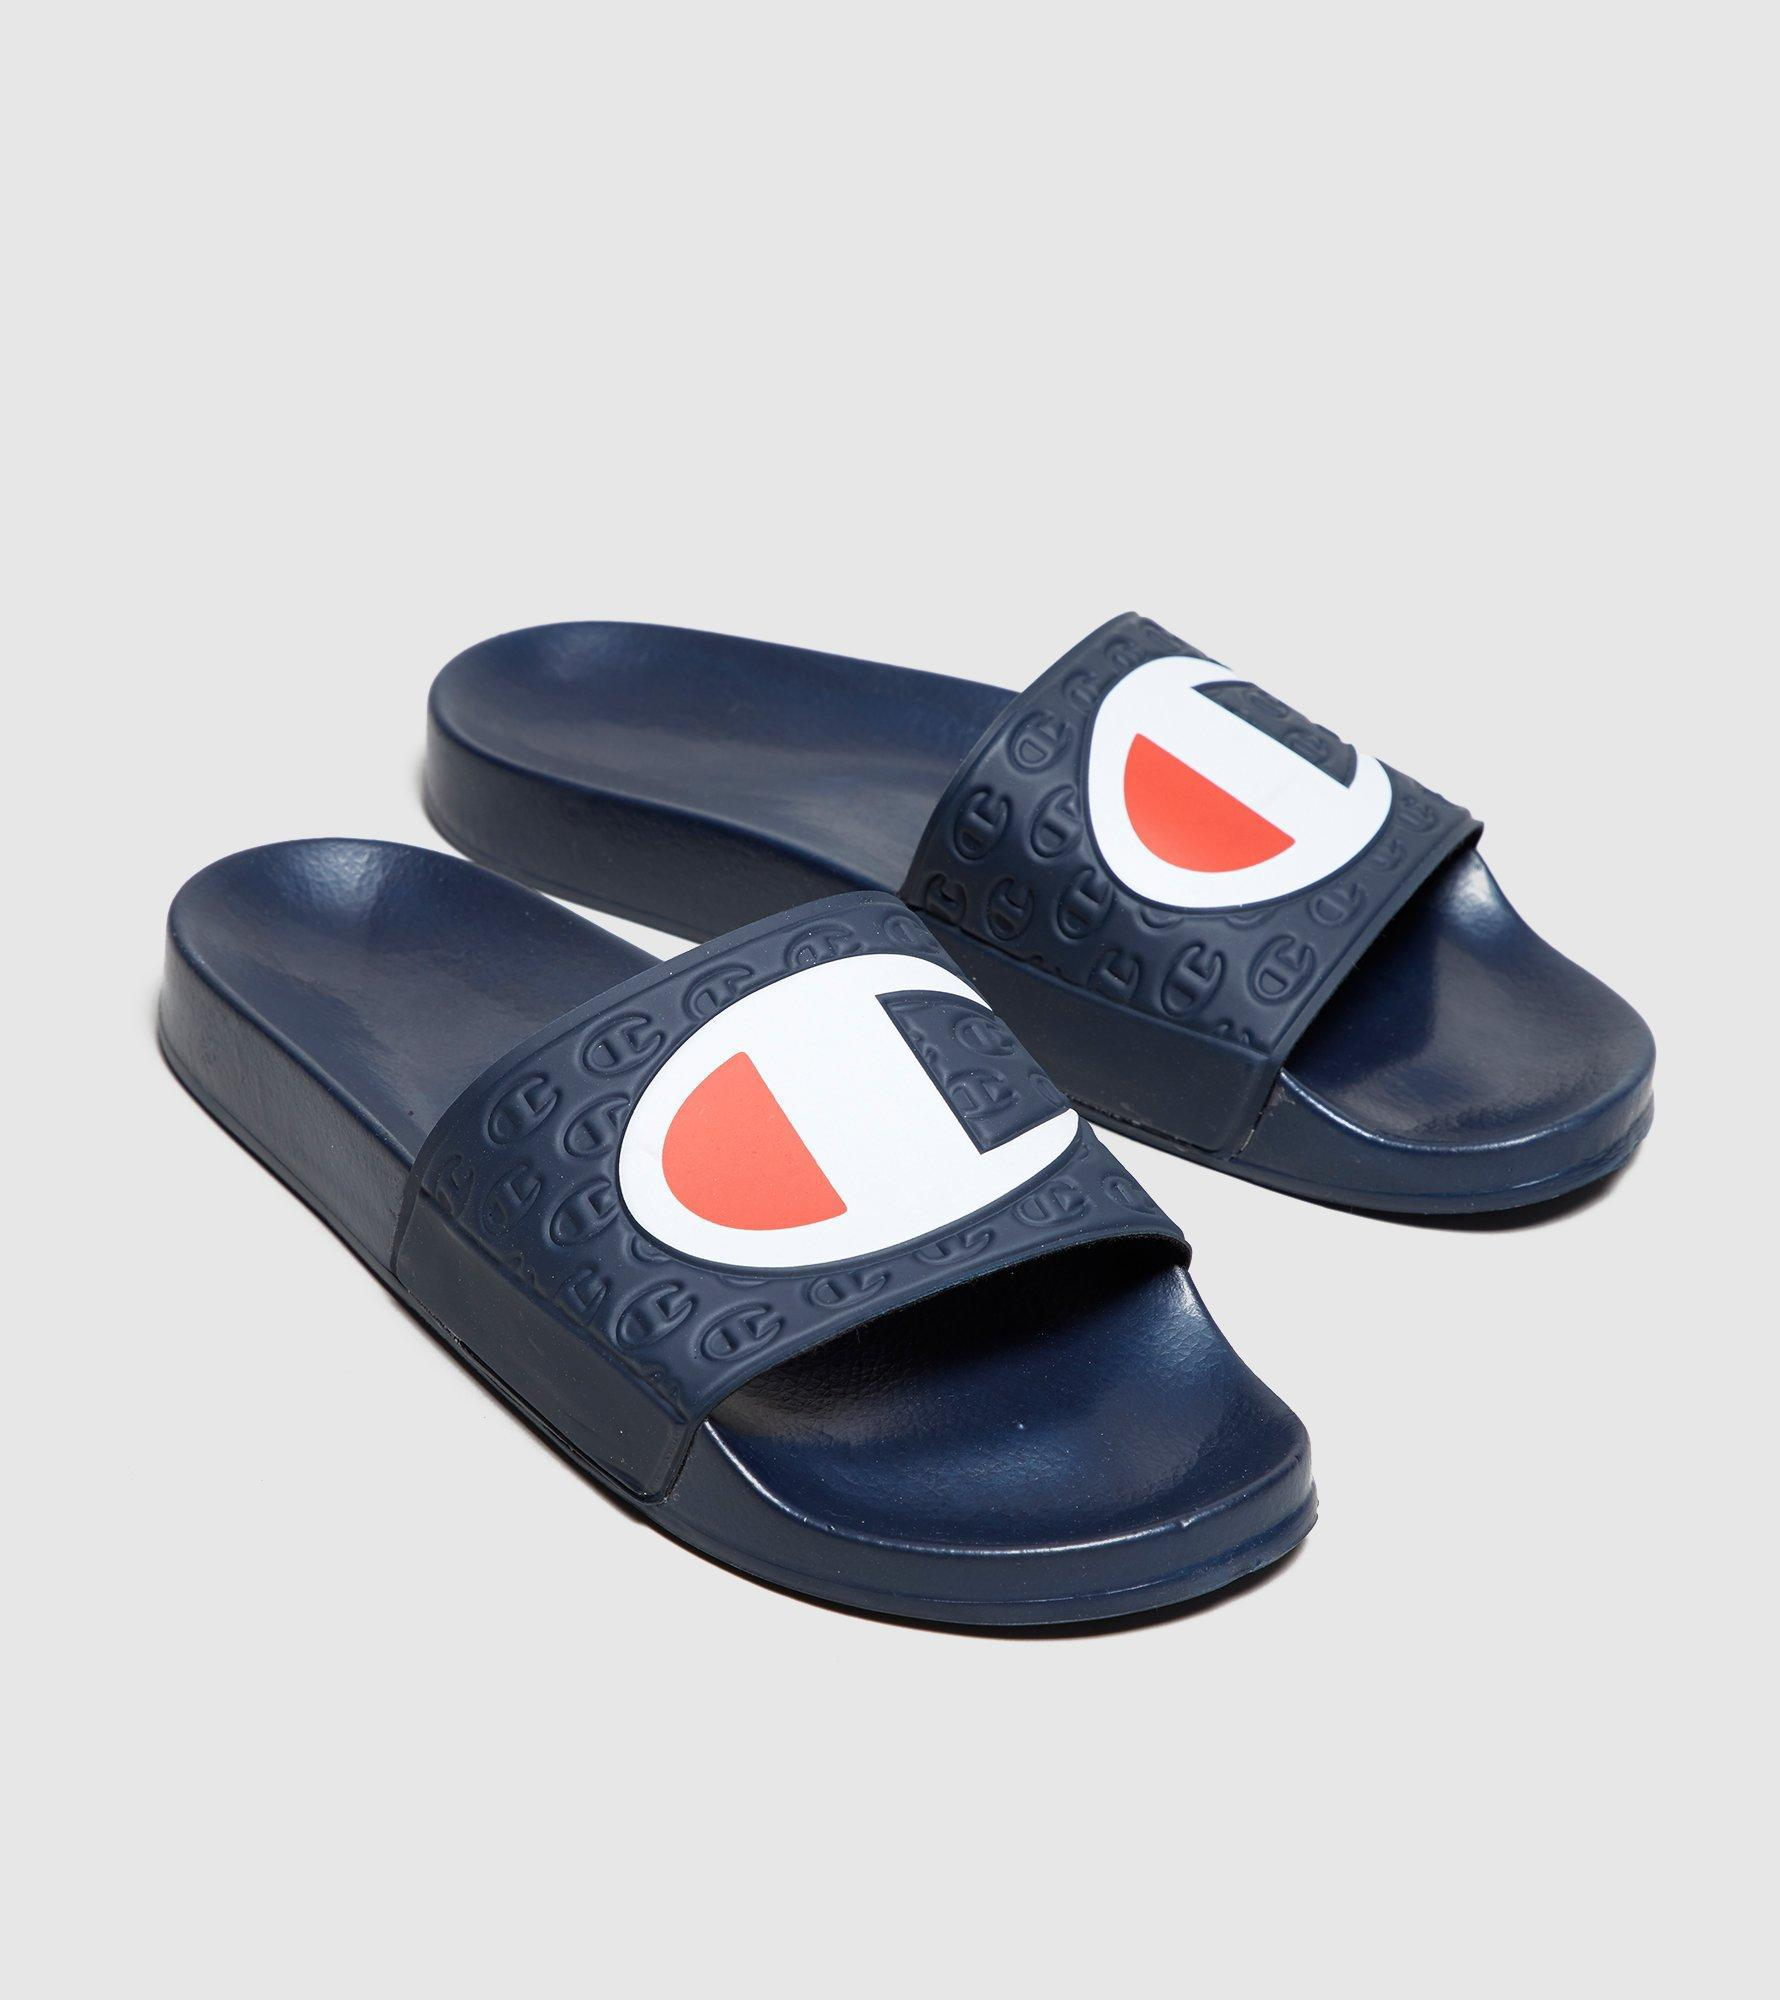 a488c7db8d7e4 Lyst - Champion Multi Lido Slides in Blue